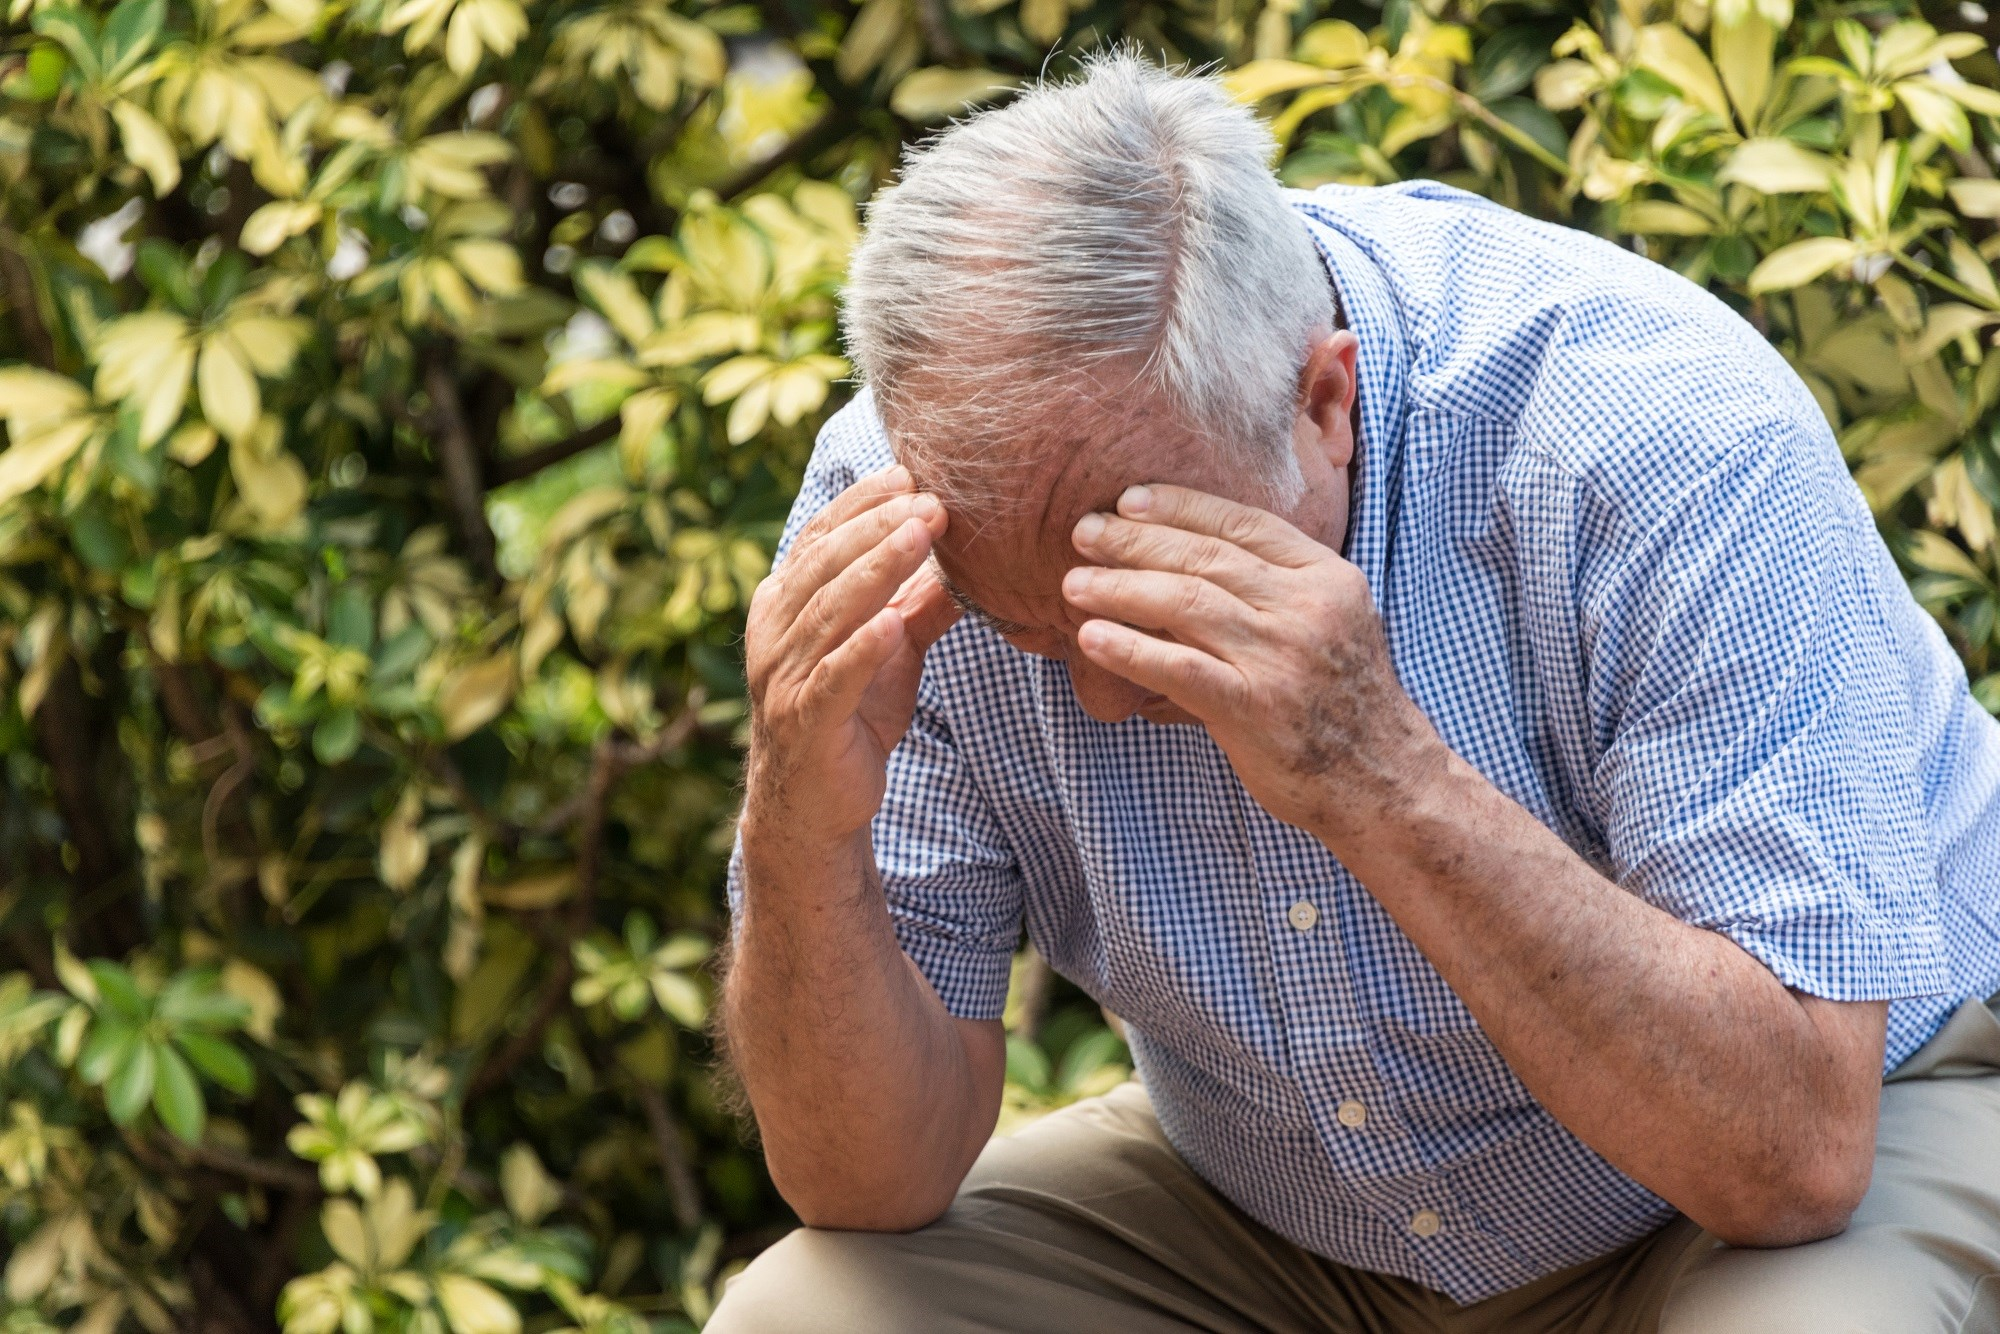 Locally Asymptomatic Ischemic Stroke May Present as Migraine Aura